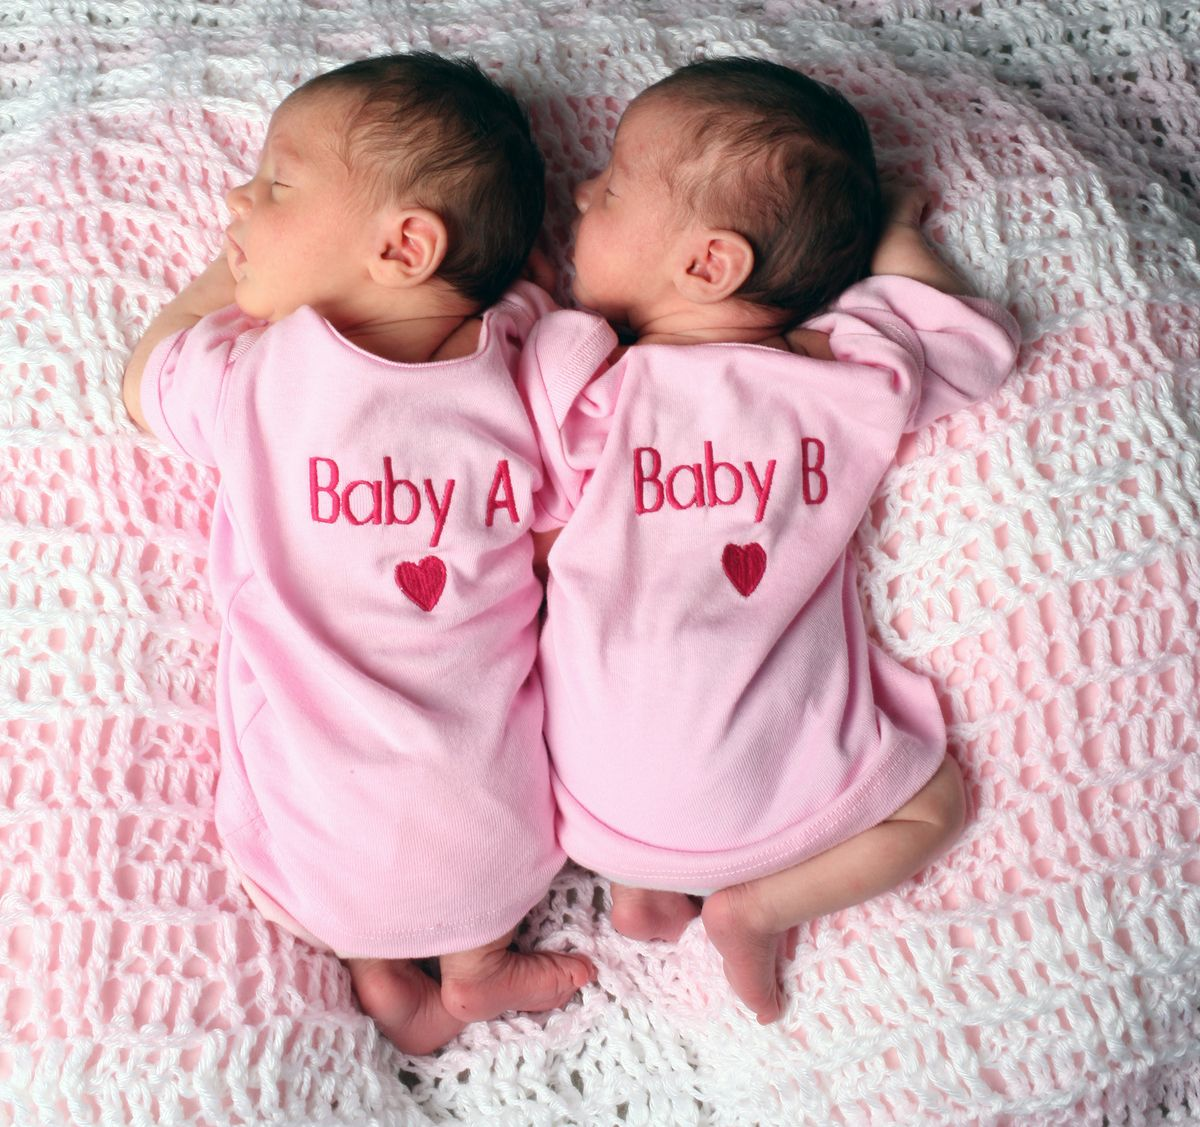 Twin baby products multiple births program